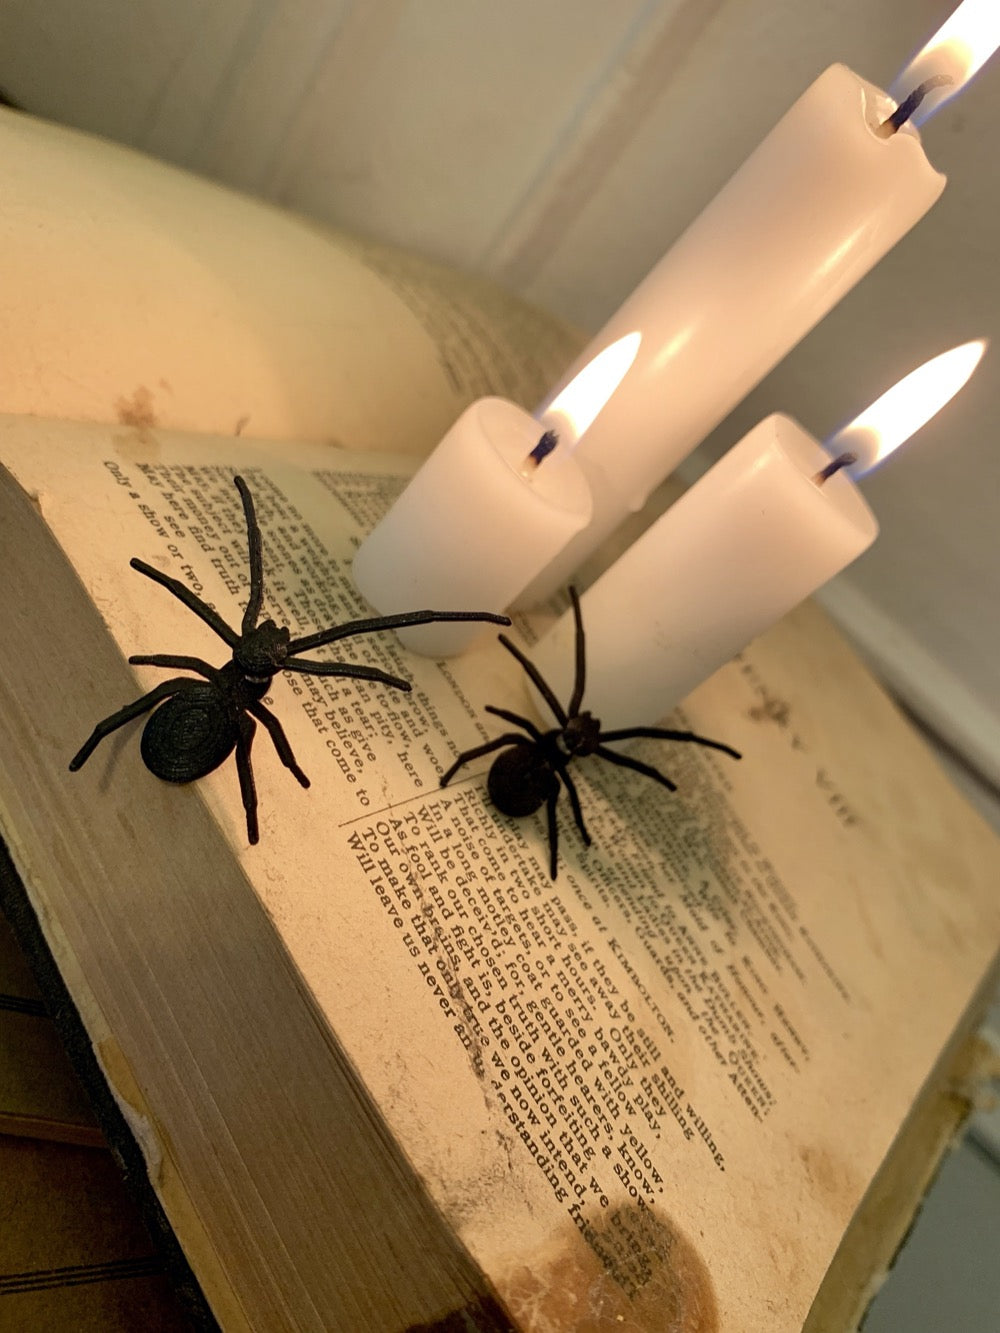 Shown are two spider earrings that are realistic in their shape. They are pictured crawling up an old book with lit candles on top to create a spooky Halloween scene.